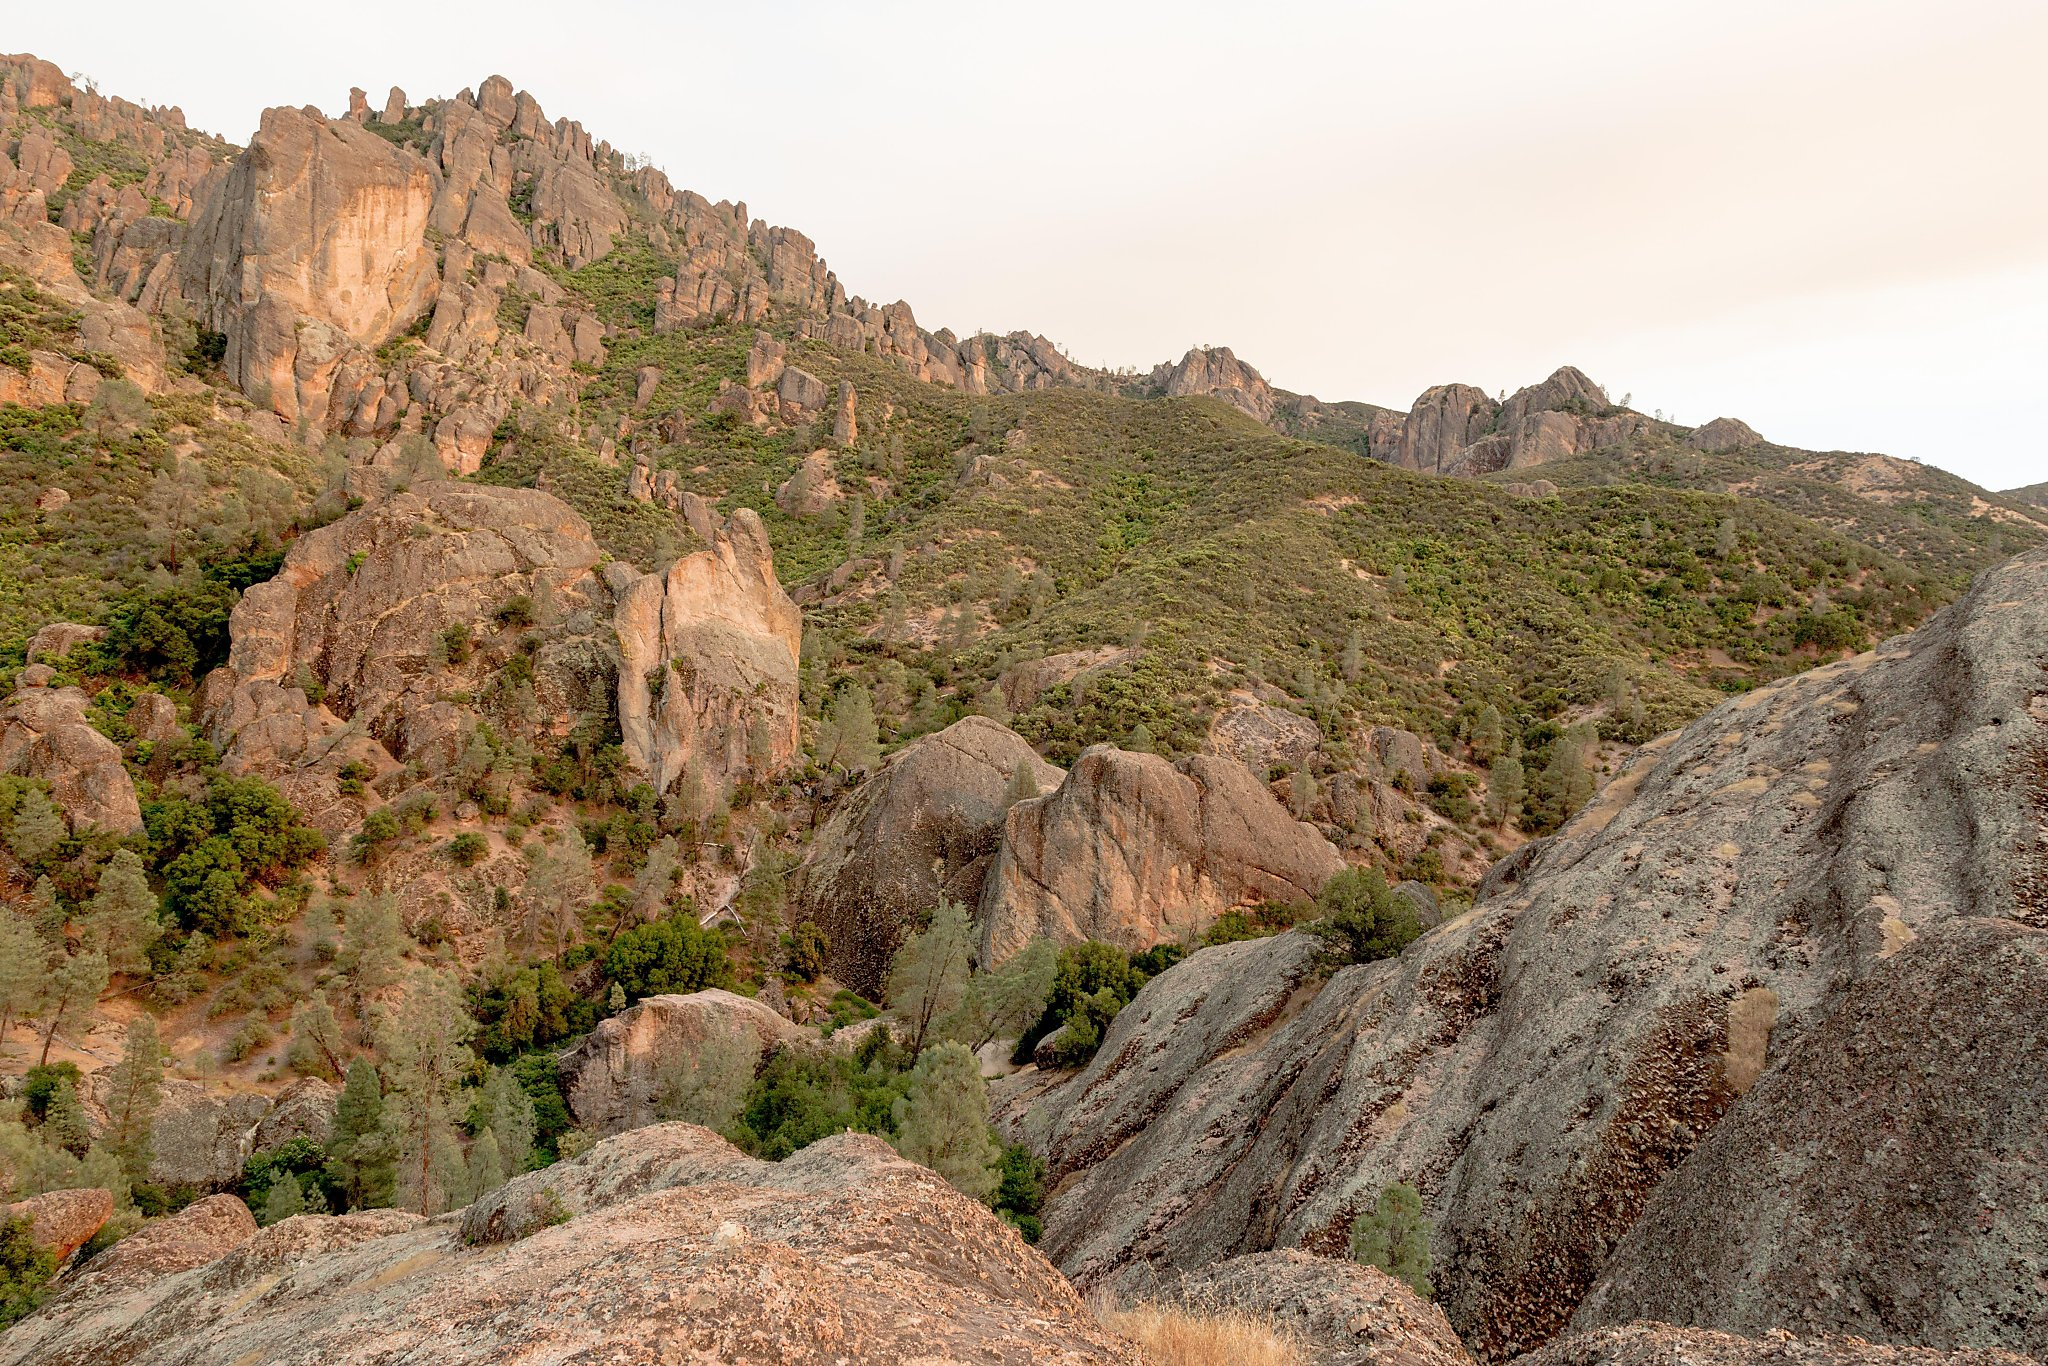 The microbiology coloring book free download - Along The Balconies Cave Trail At The Pinnacles National Monument In Soledad Calif